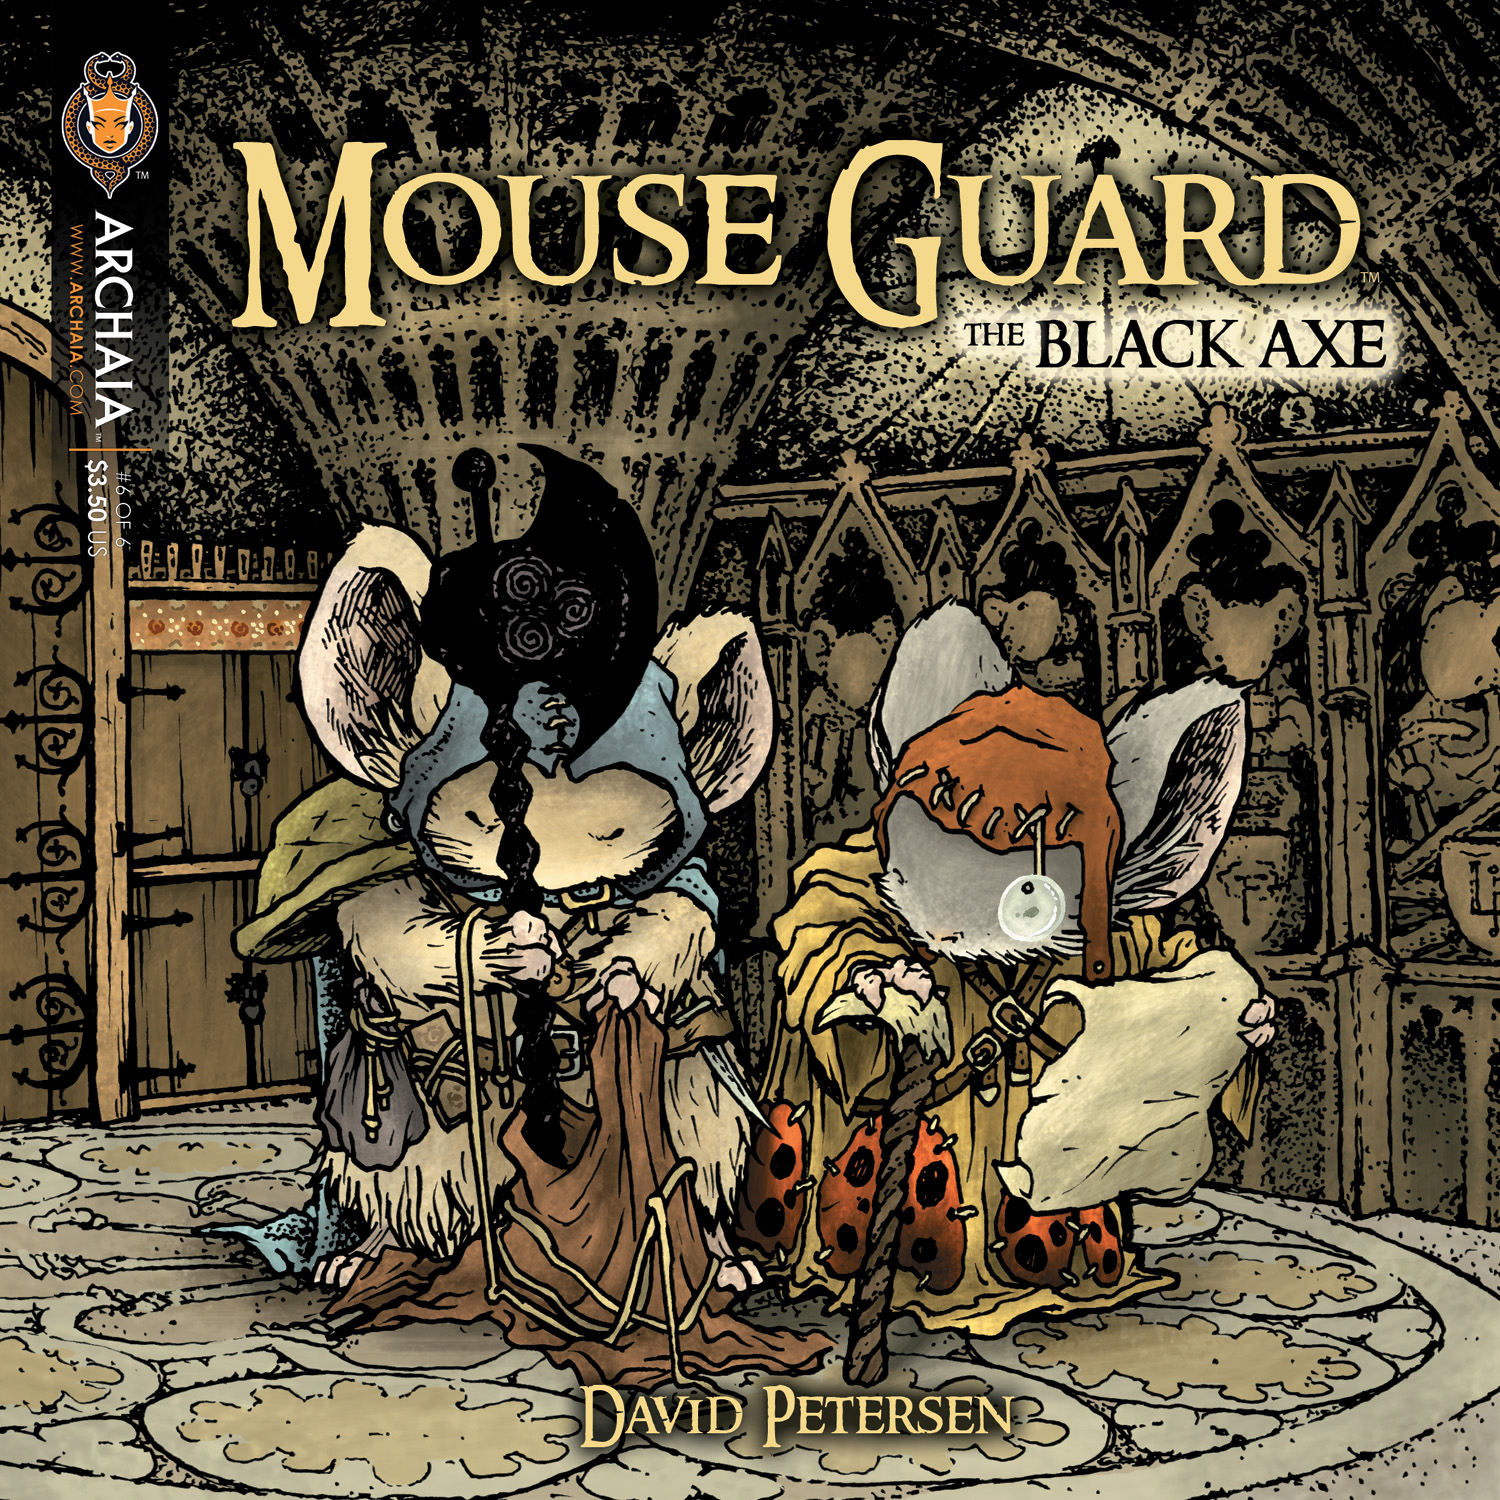 Mouse Guard: The Black Axe #6 (of 6) Writer & Artist: David Petersen Publisher: Archaia Entertainment Price: $3.50 On Sale: February 13, 2013 Good things come to those who wait....